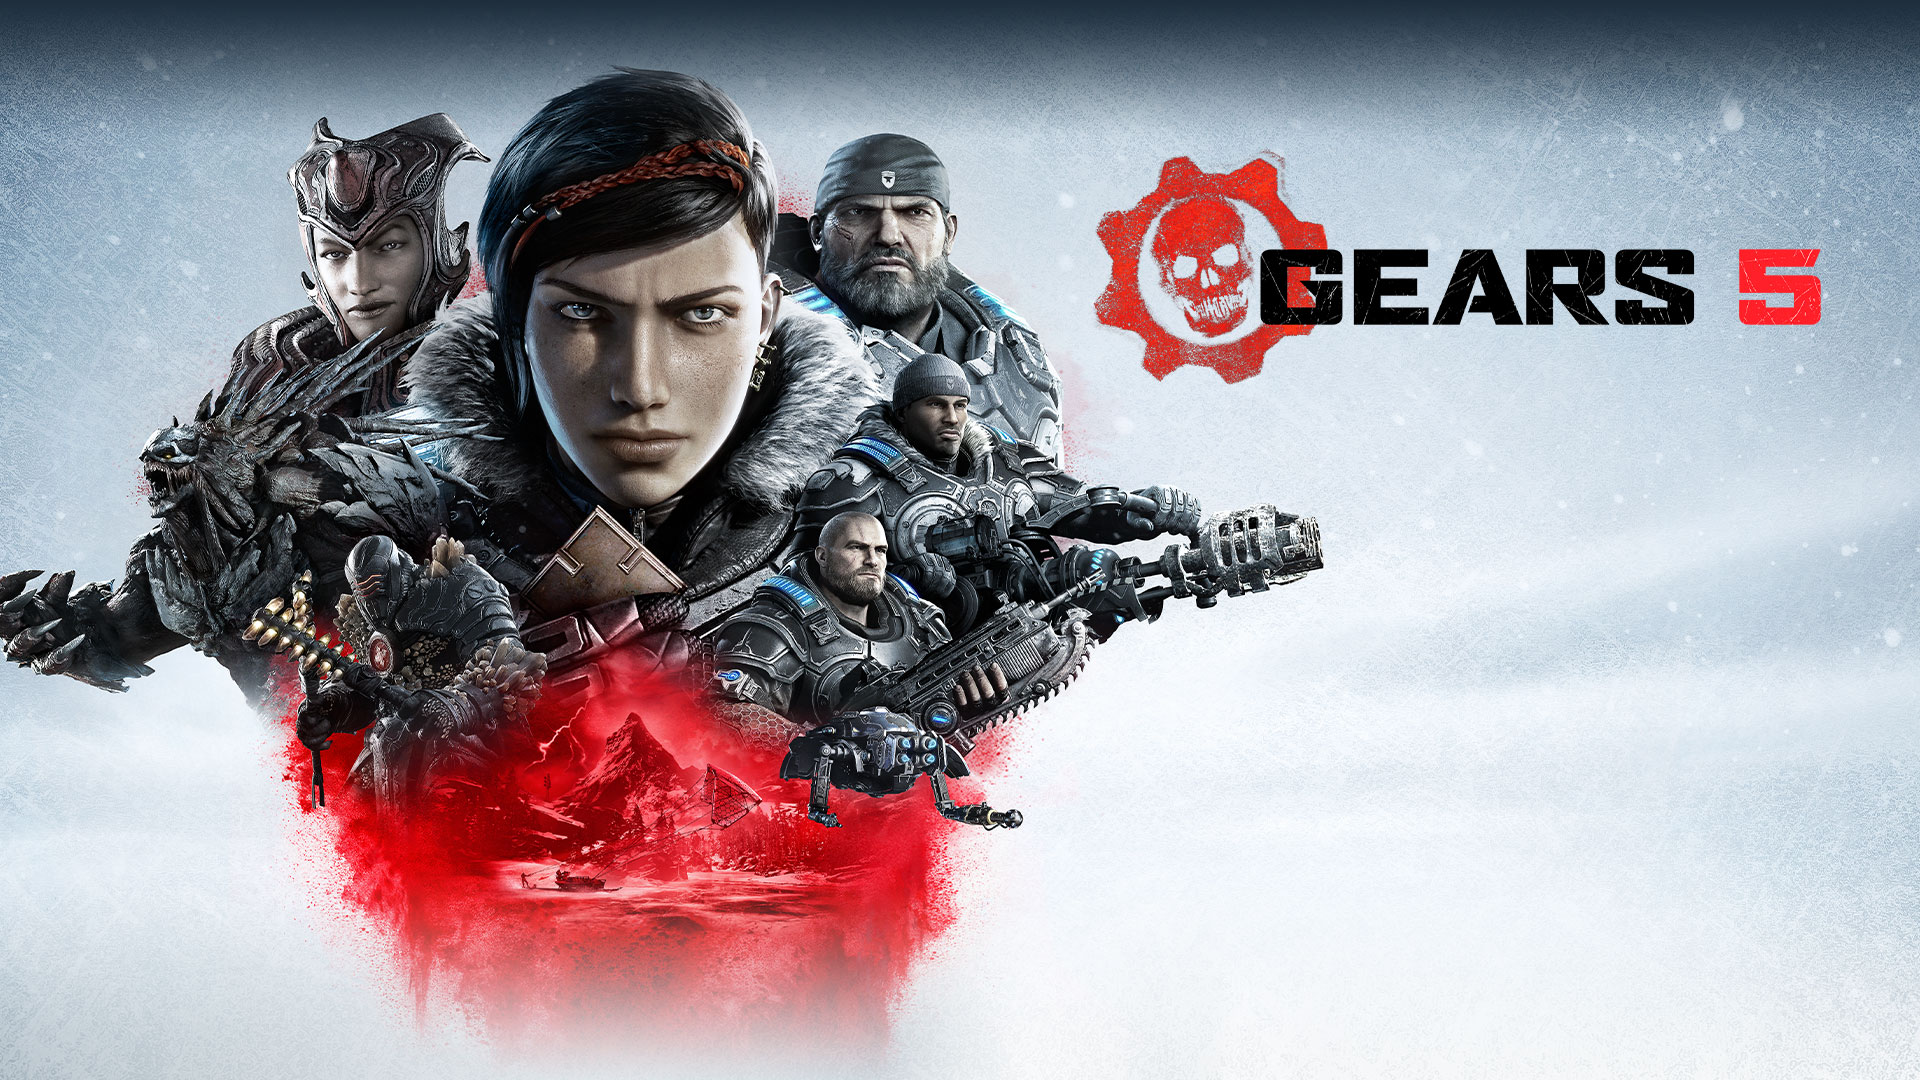 Gears 5 Players Now Have The Option To Either Earn The Characters Or Purchase Them With Real Money